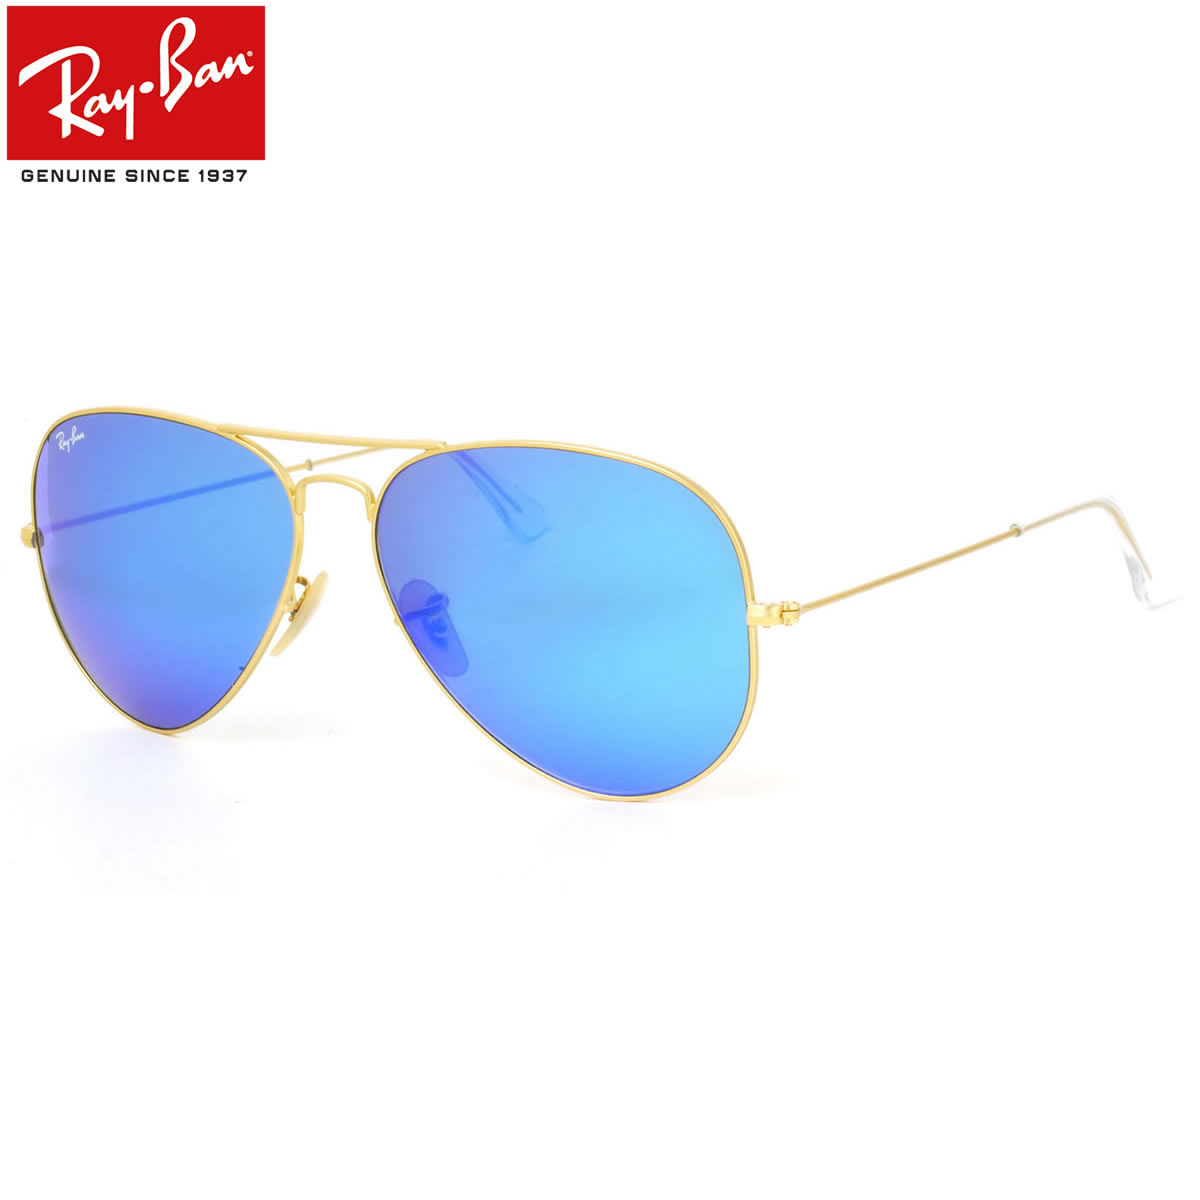 8ffca5a3082 Optical Shop Thats  Ray-Ban Sunglasses RB3025 112 17 62size(LARGE ...